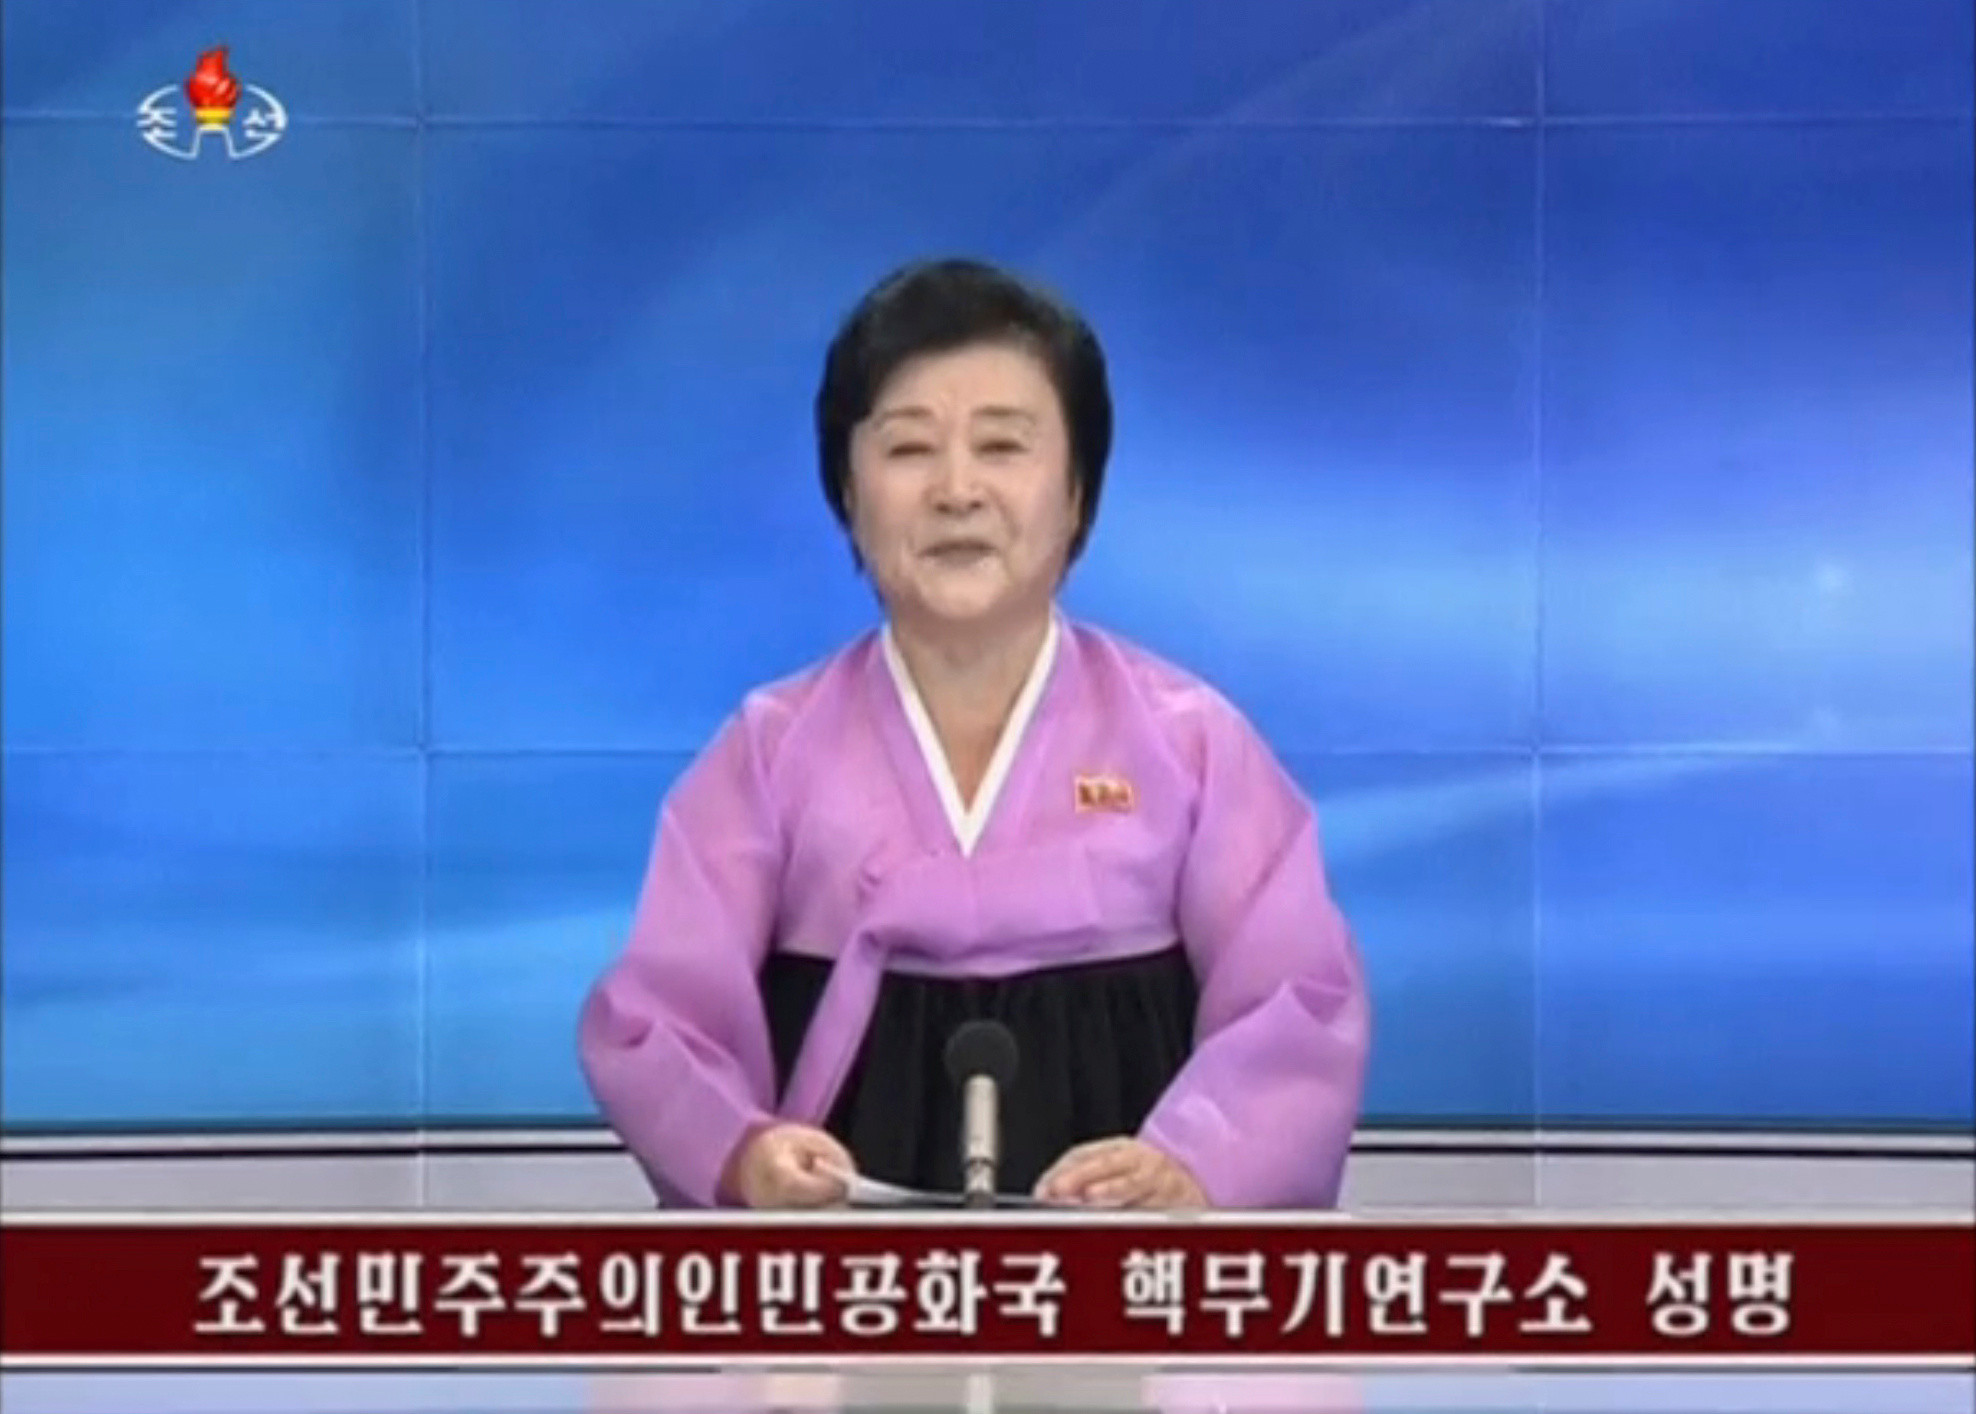 A North Korean newsreader announces the test